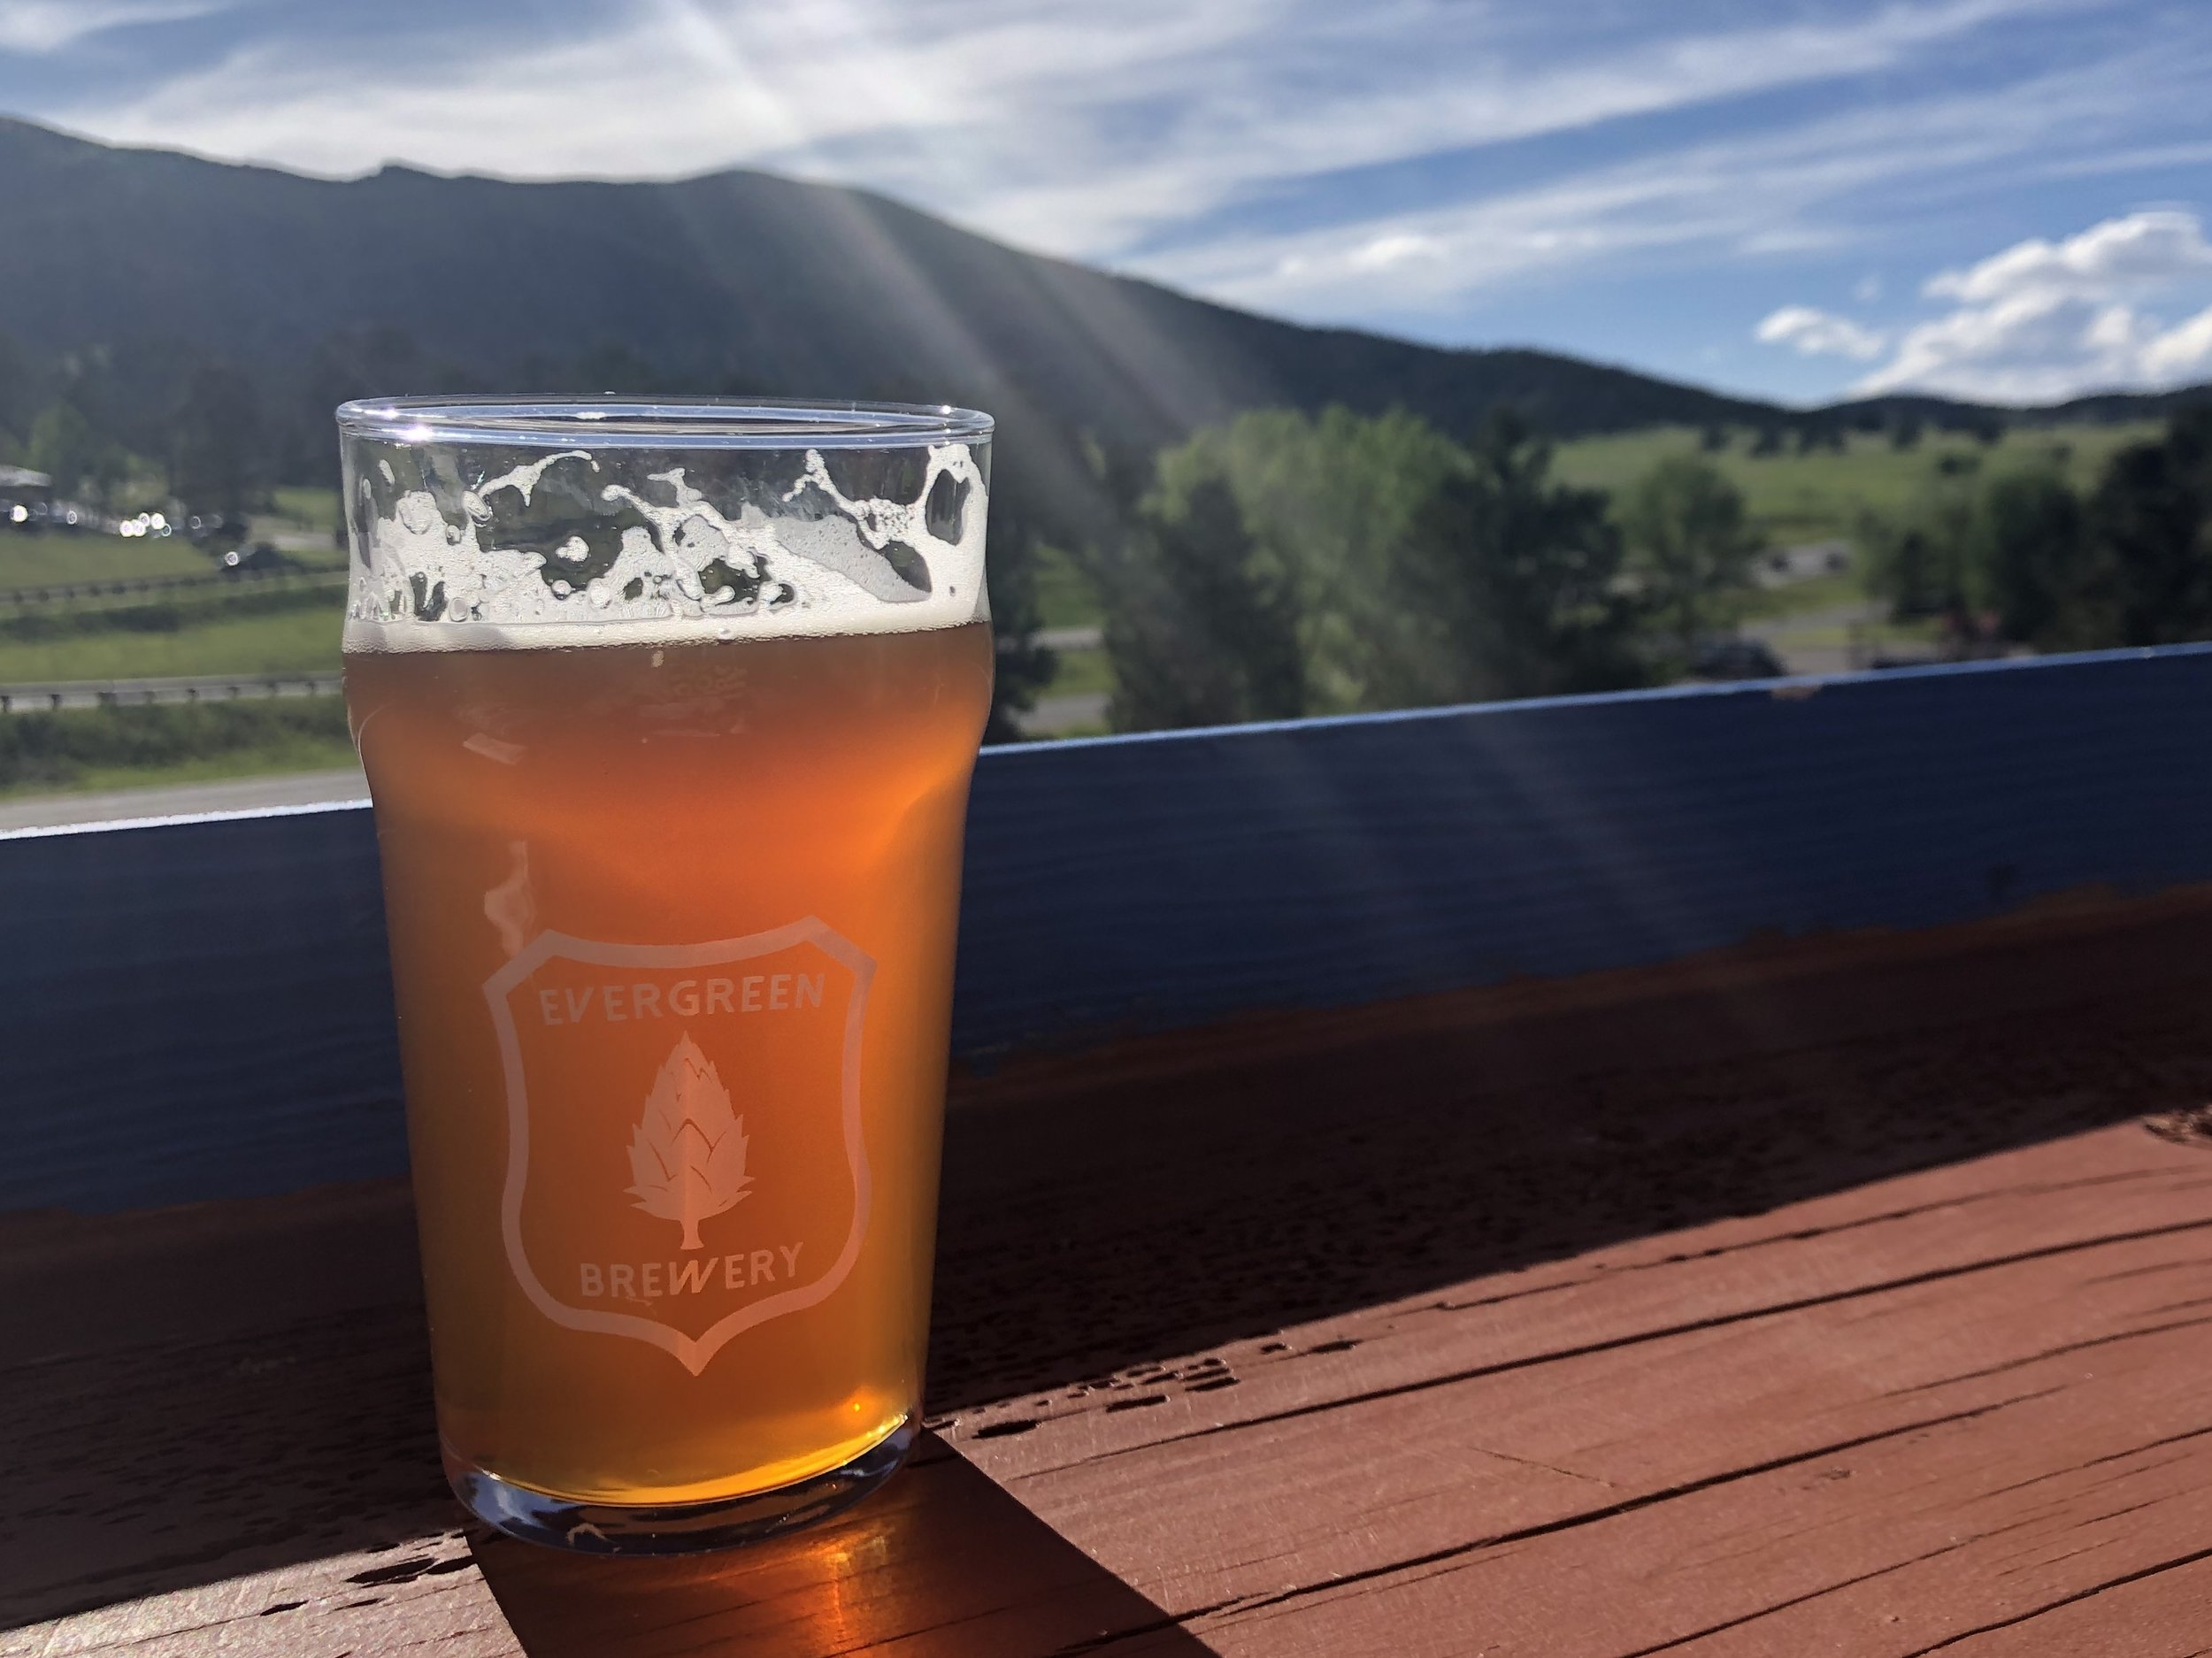 Spectacular views of Bergen Peak from Evergreen Brewery's deck. ©Suzanne Brown 2019